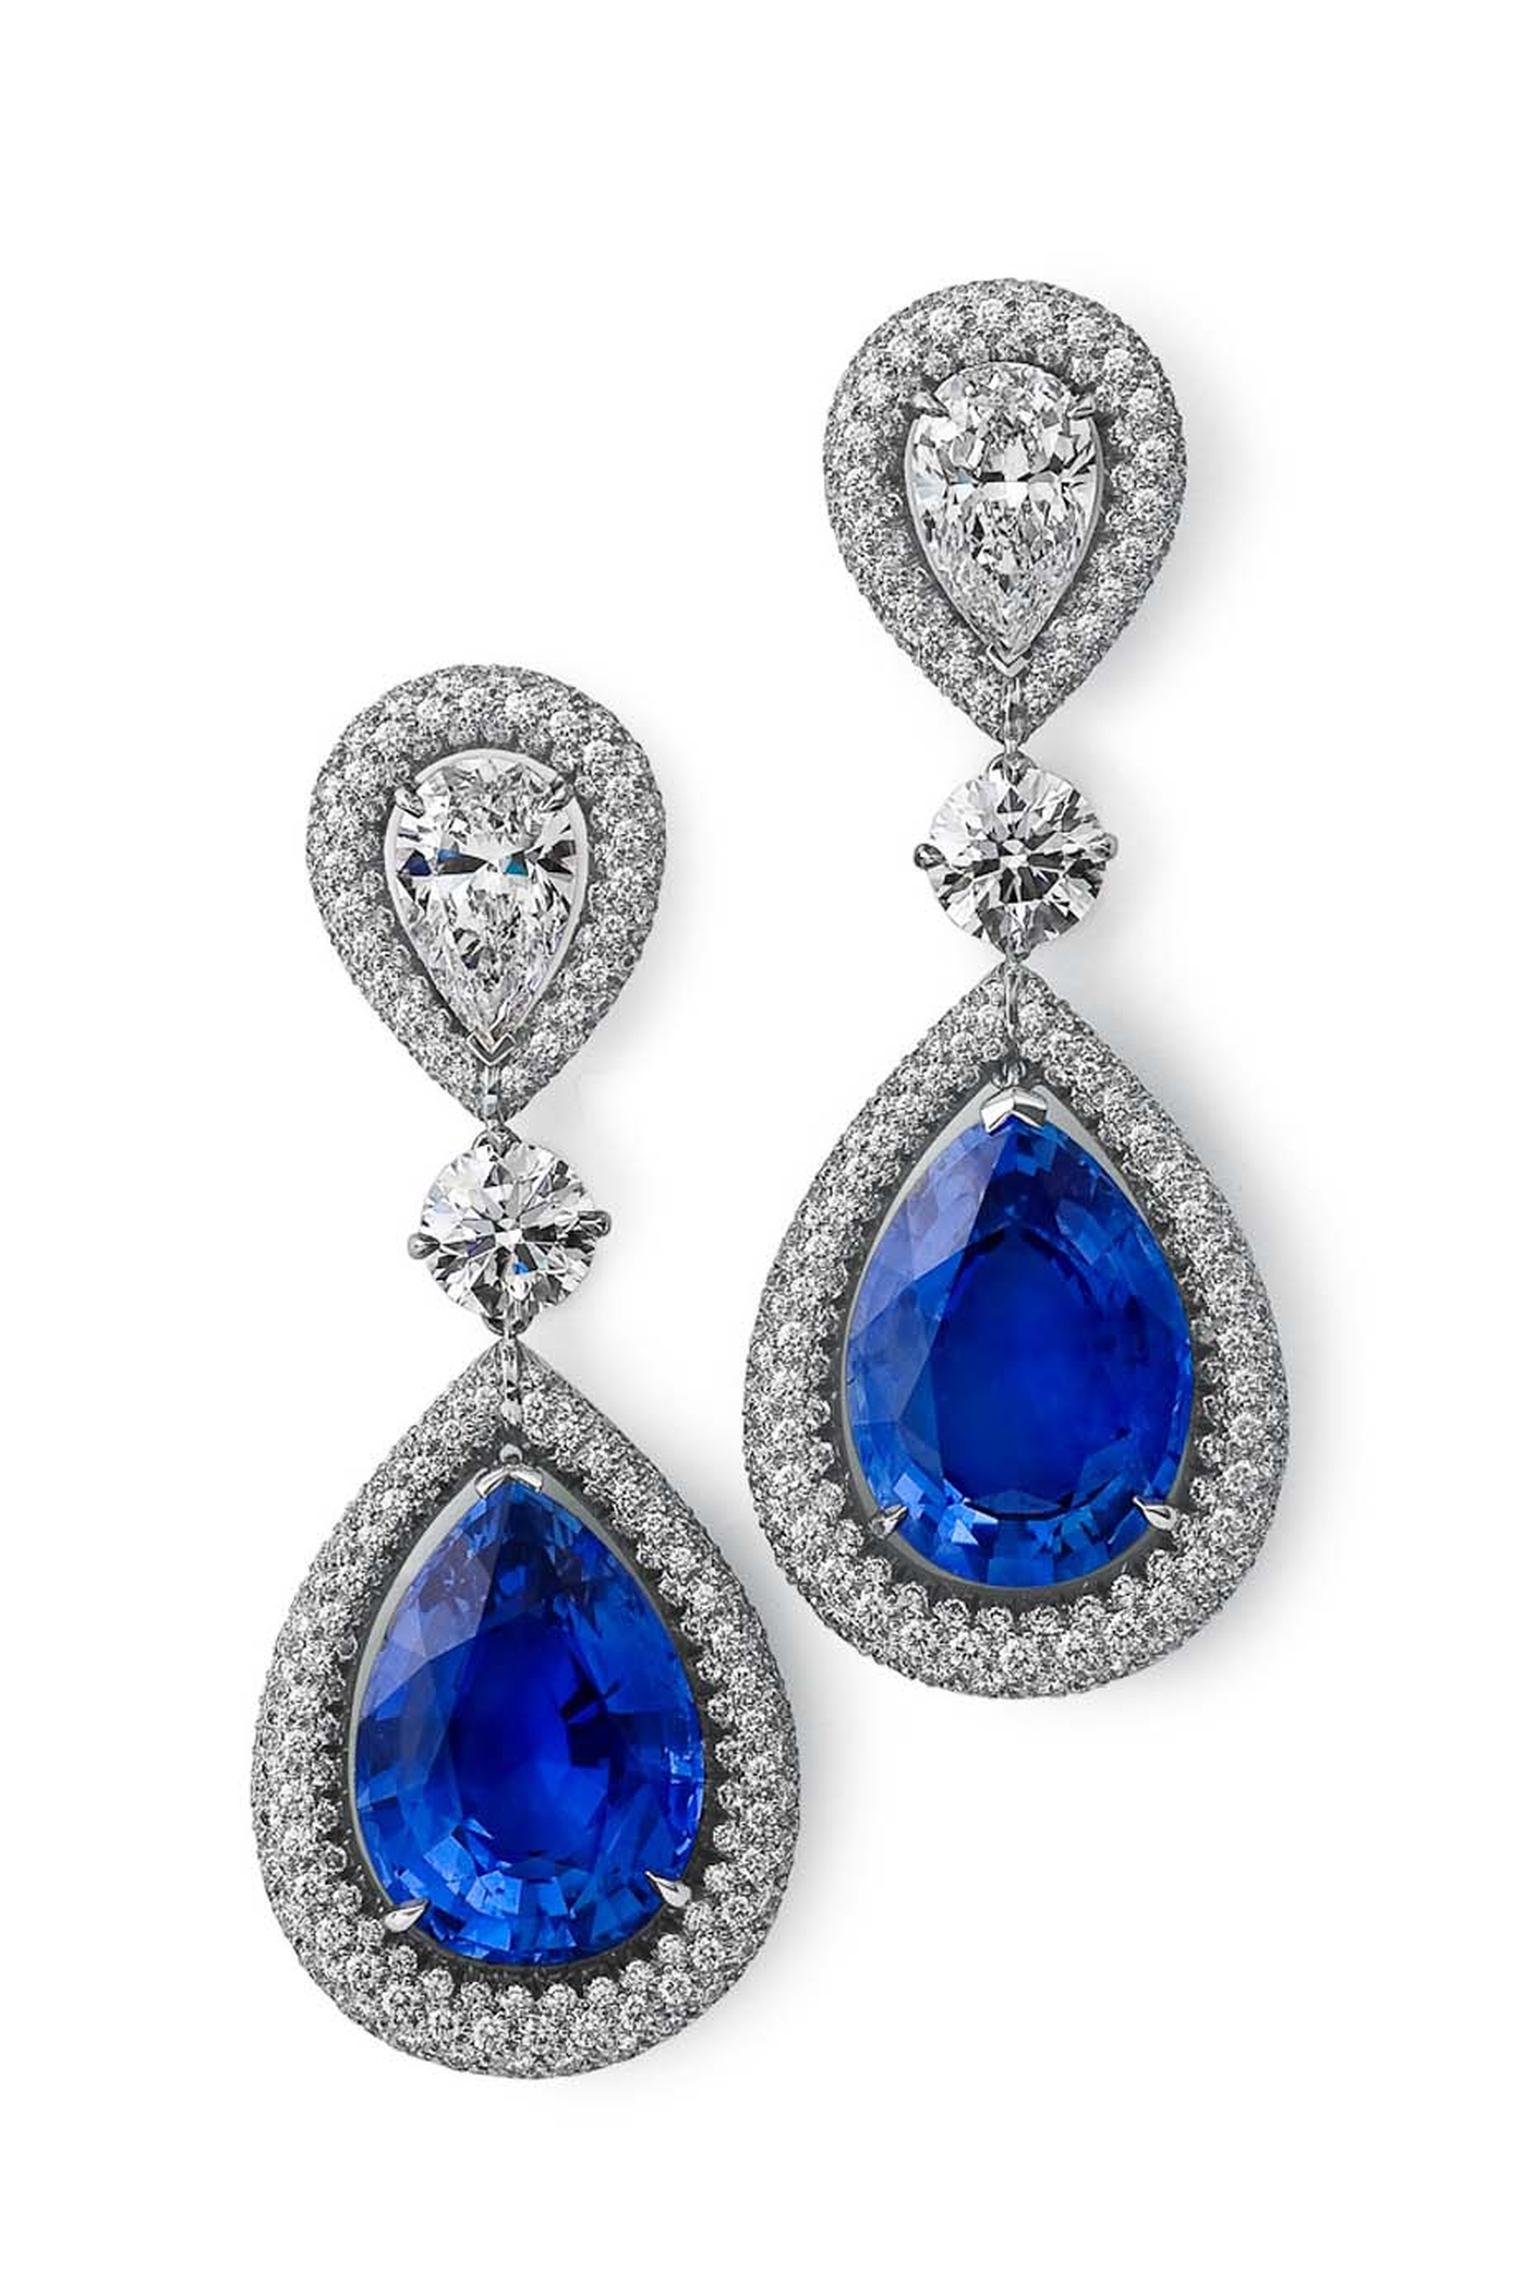 Steven Fox handmade drop earrings with 18.37ct Ceylon sapphires and near flawless diamonds, including two pear-shaped and two round brilliant diamonds, surrounded by 484 micro-set diamonds.